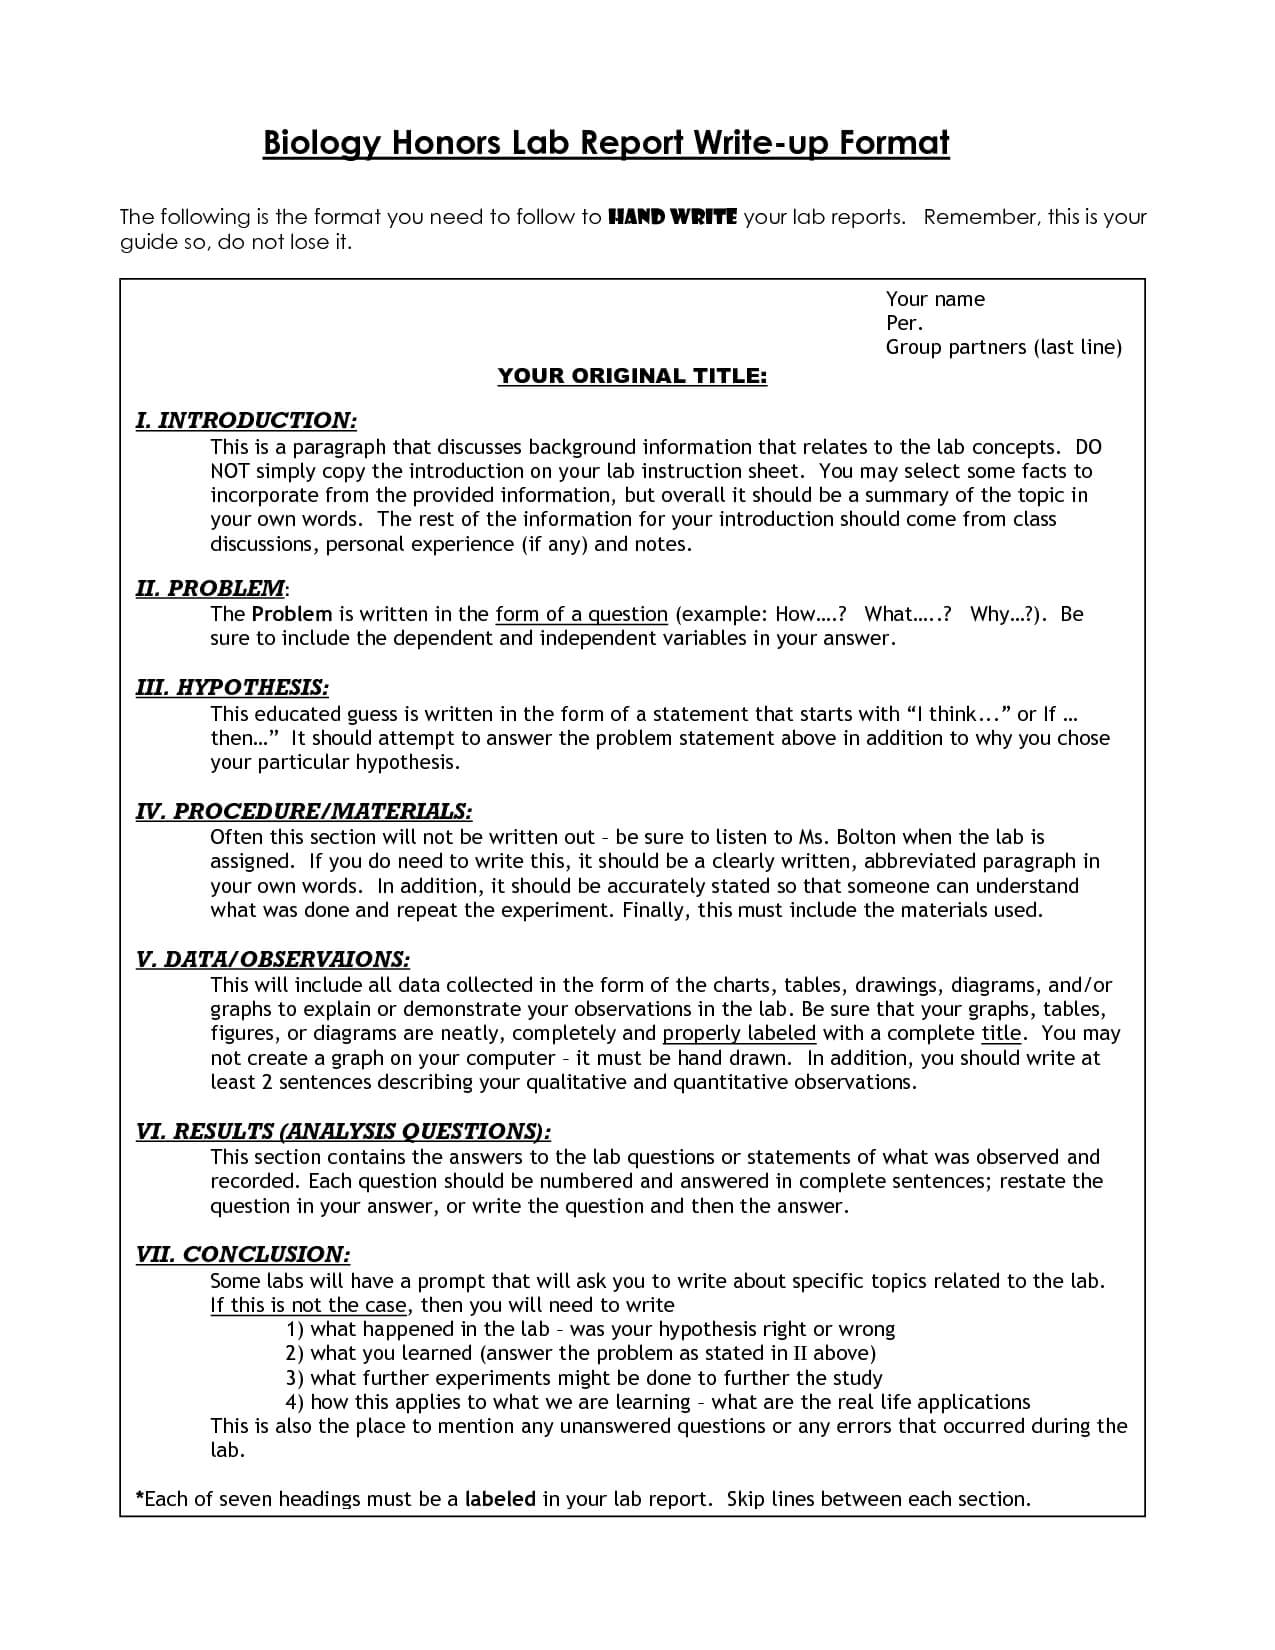 Biology Lab Report Format Example | Science Writing intended for Lab Report Conclusion Template